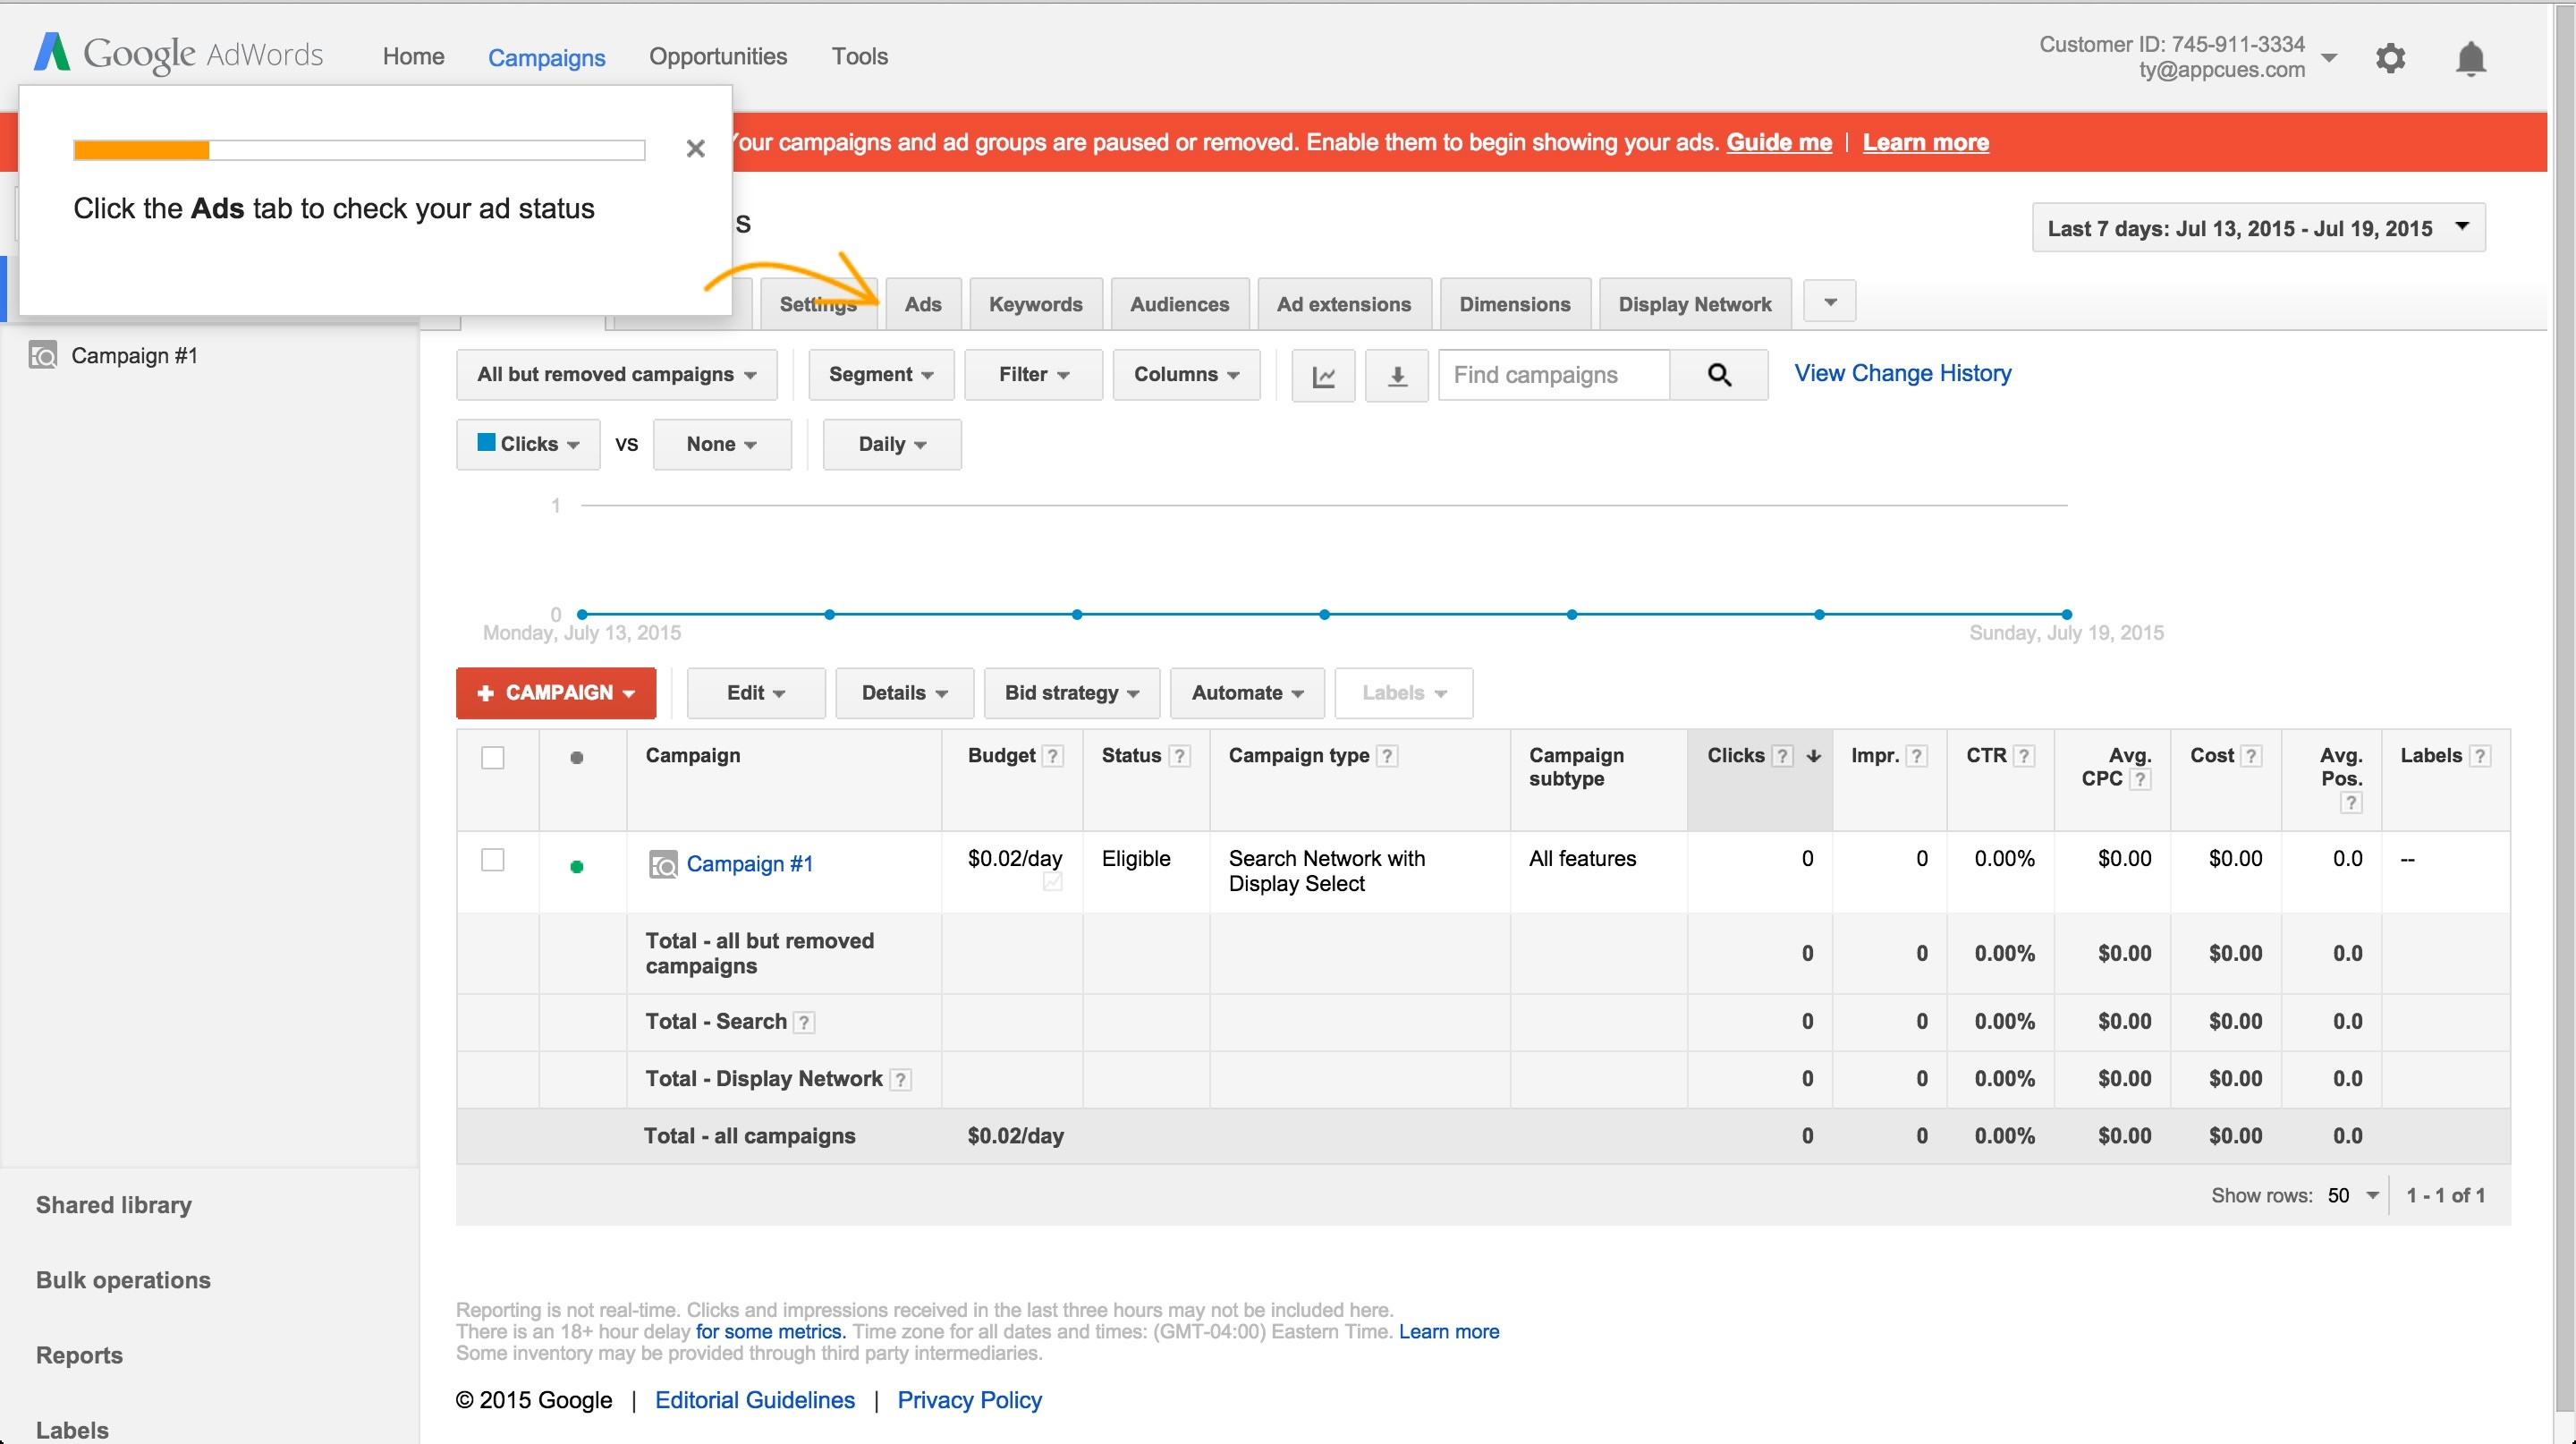 Adwords onboarding tour step 3